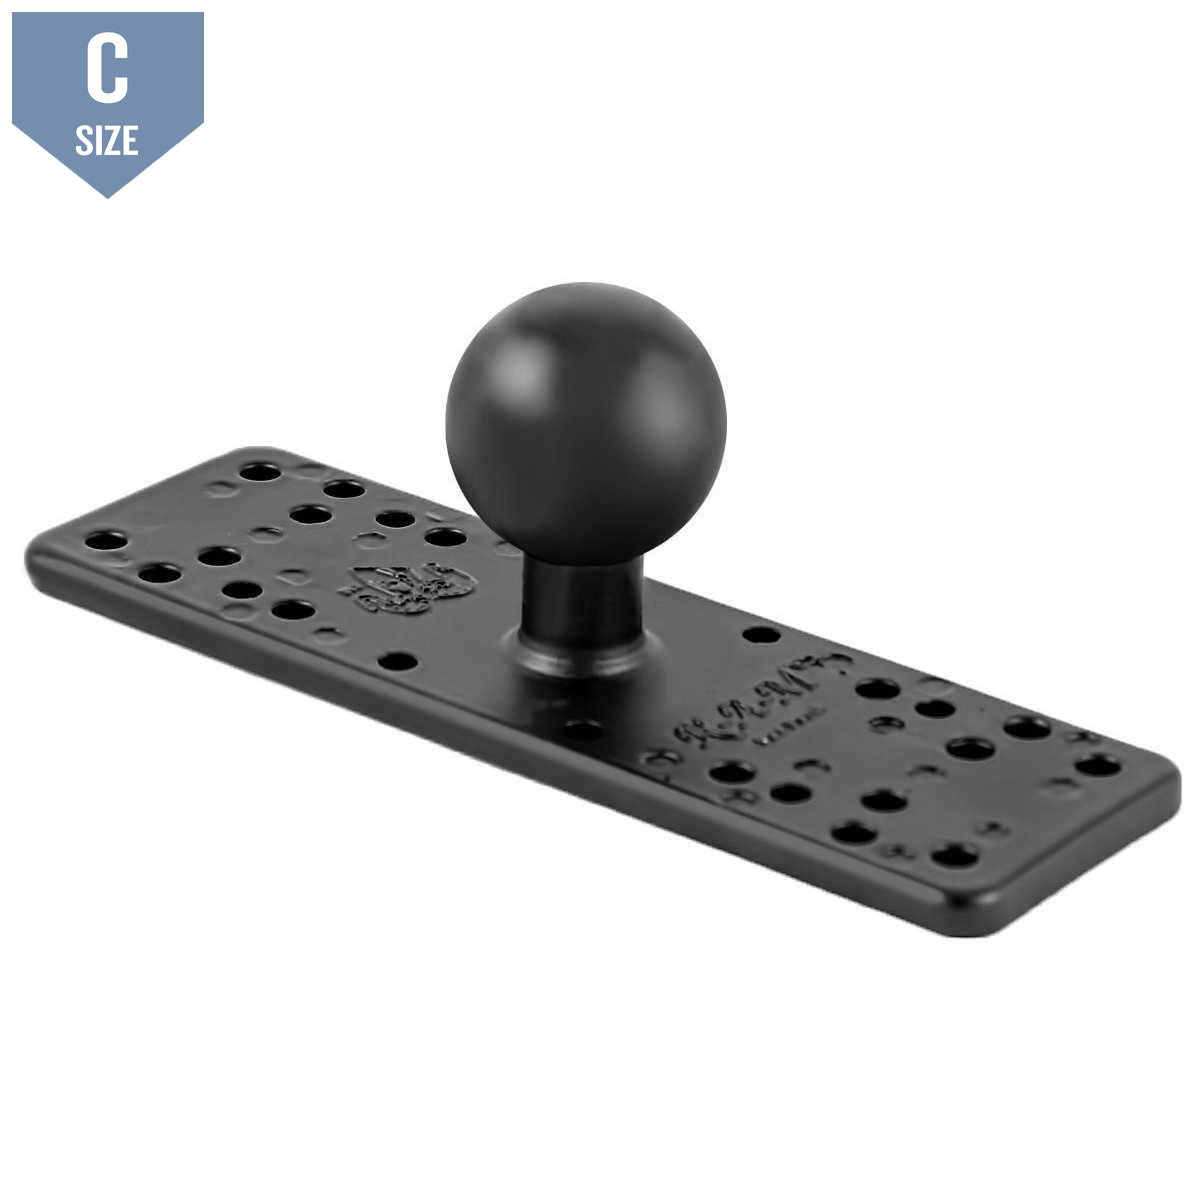 "RAM 6.25"" x 2"" Universal Electronics Base with 1.5"" Ball (RAM-111BU)-Modest Mounts"